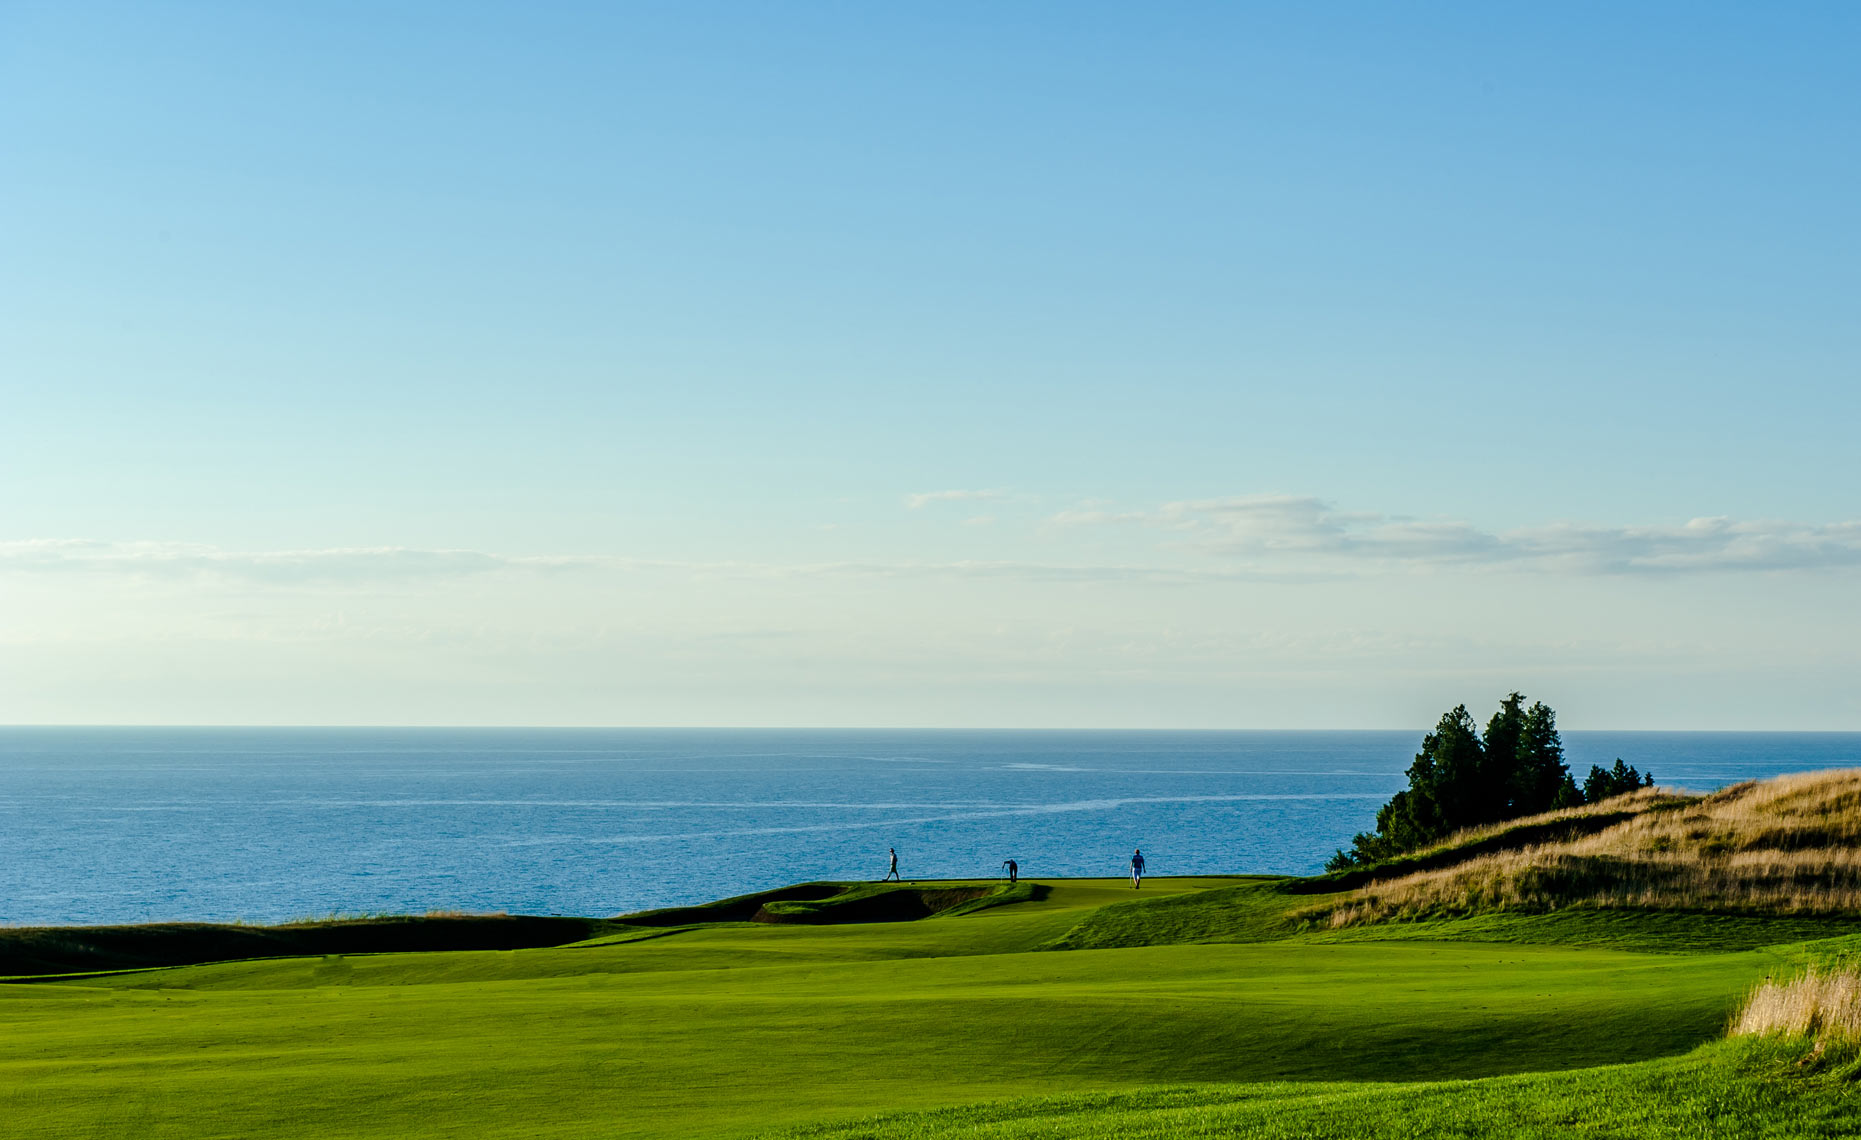 Neil-Colton-lifestyle-photographer-arcadia-bluffs-6